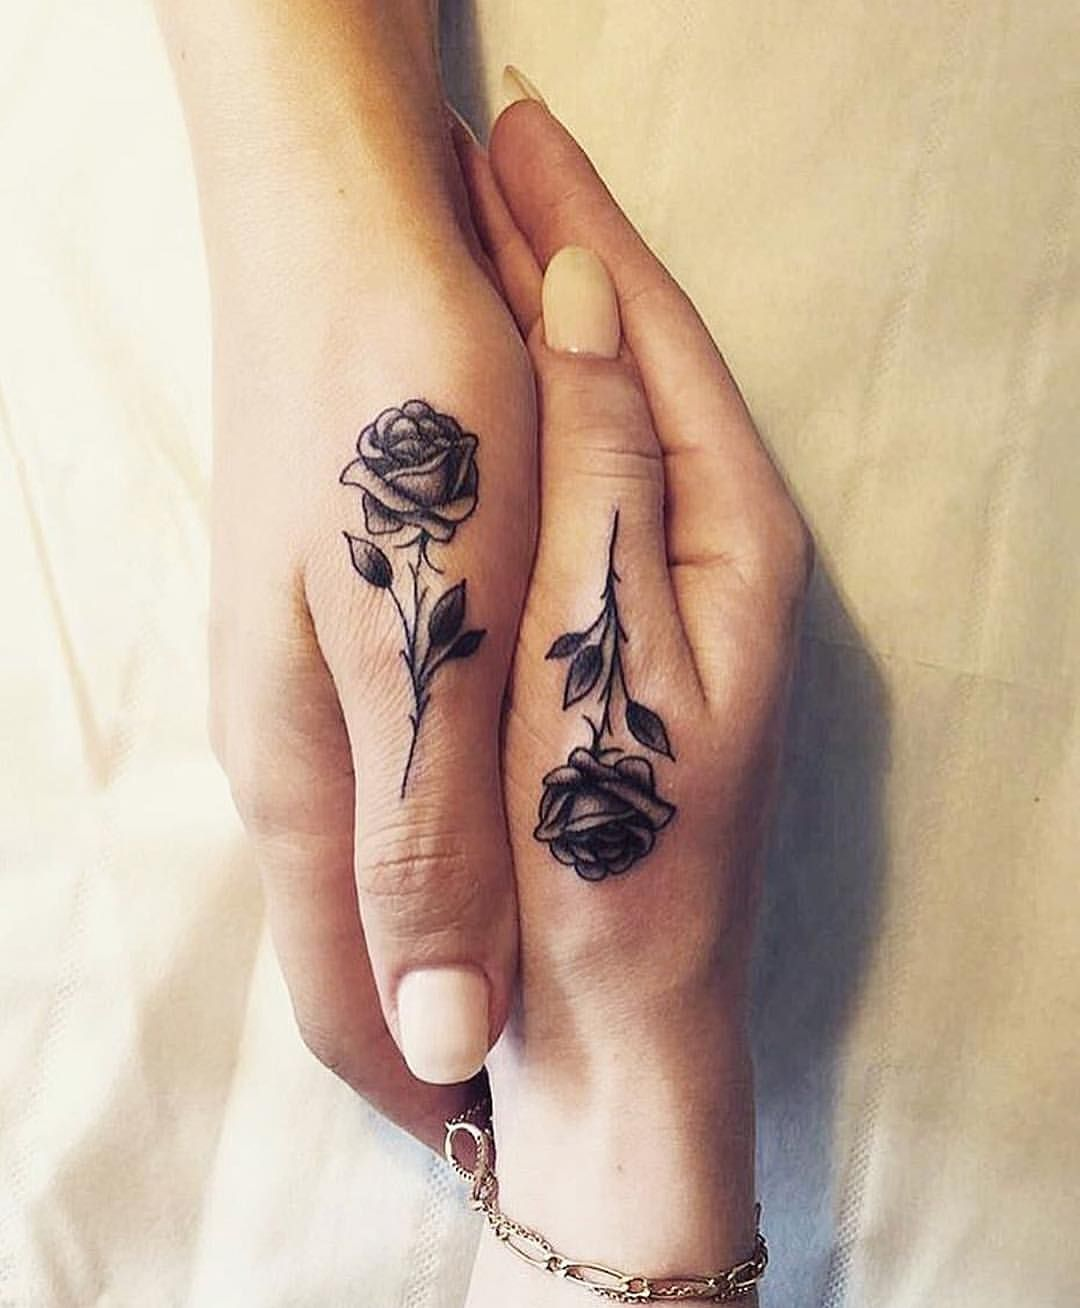 34 4k Likes 636 Comments Tattoos Tattooinkspiration On Instagram Tag Someone You D Get A Matching Tattoo Wit Tattoos For Daughters Tattoo Fonts Tattoos